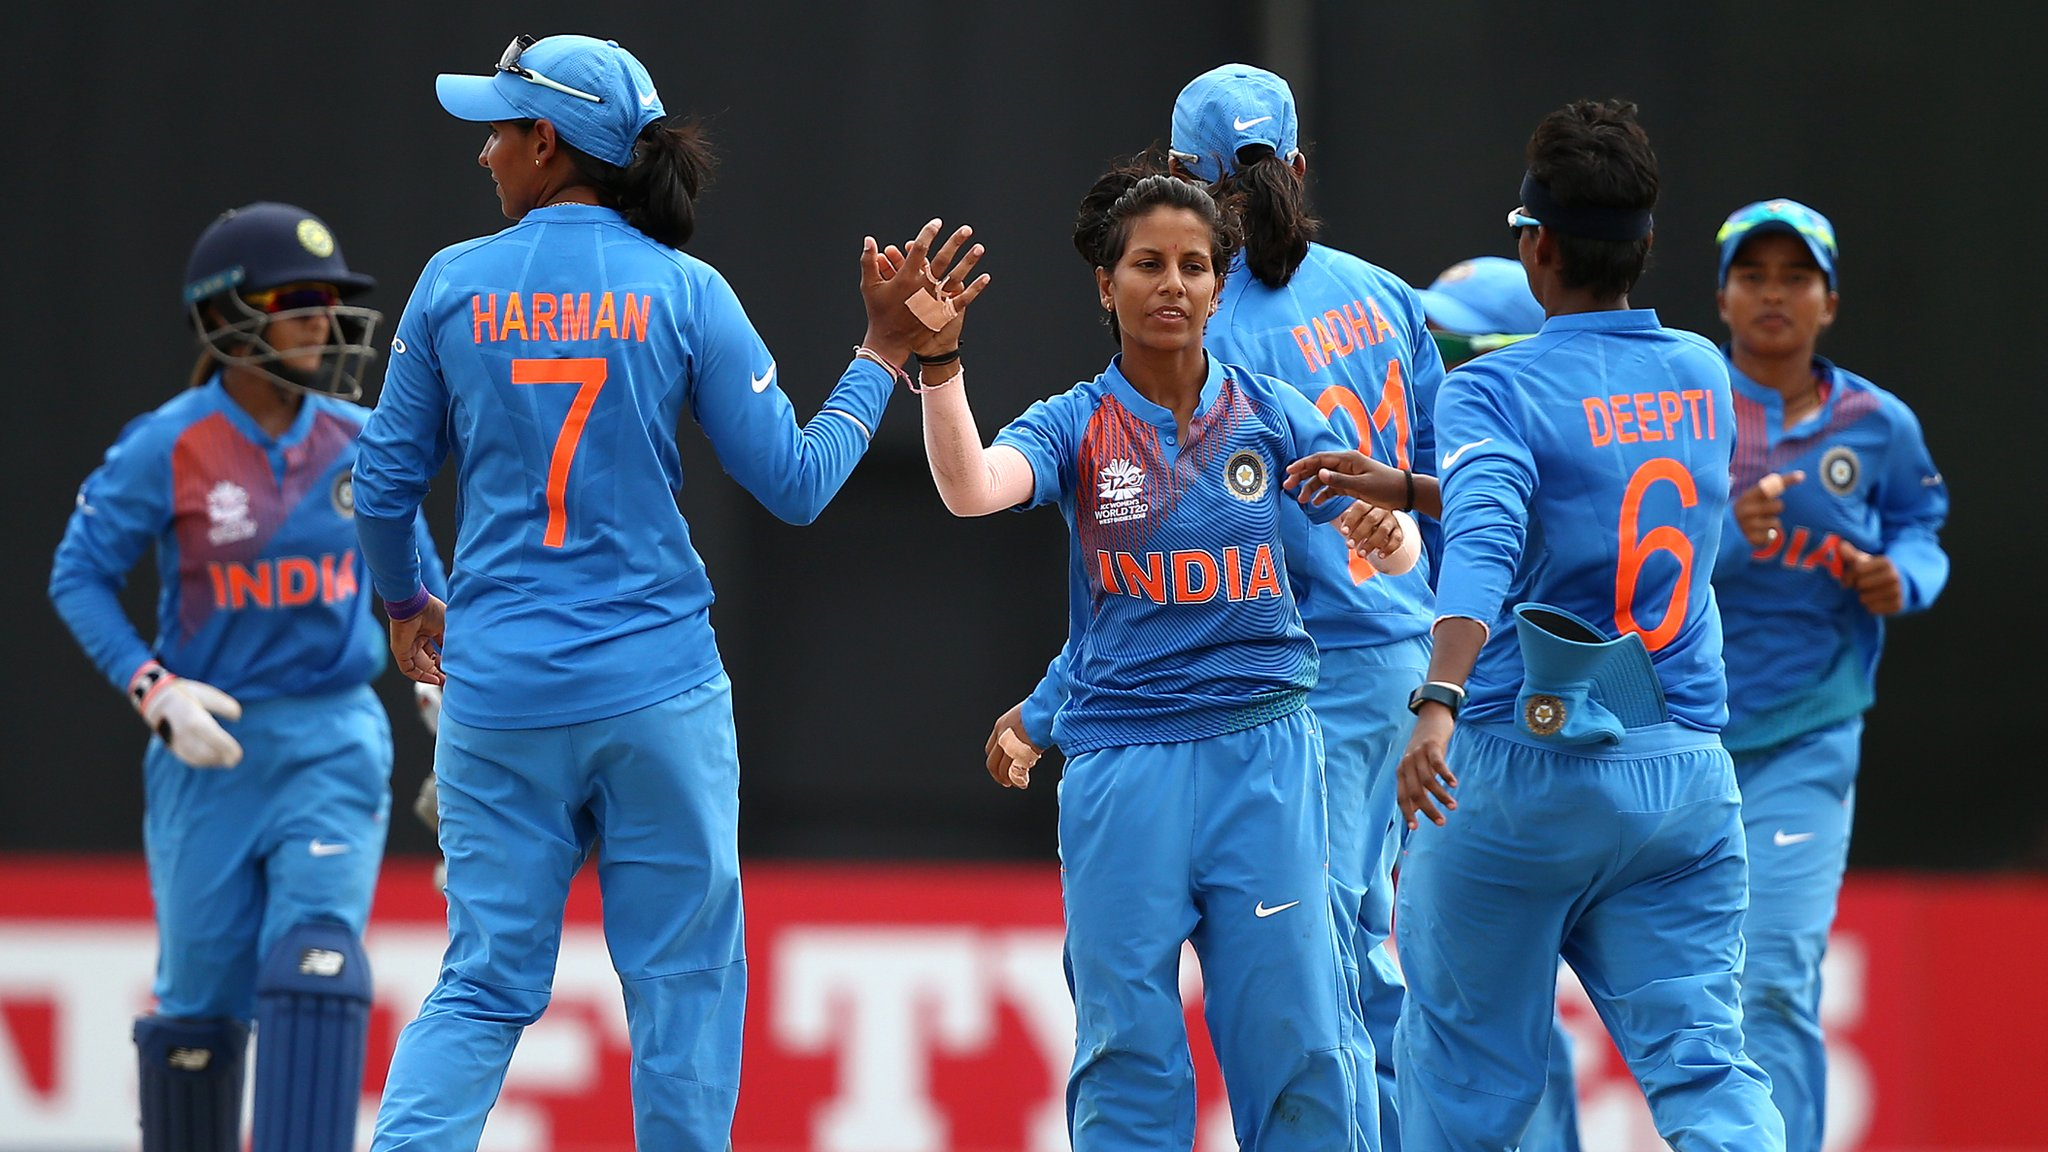 India beat Australia to top Women's World Twenty20 group